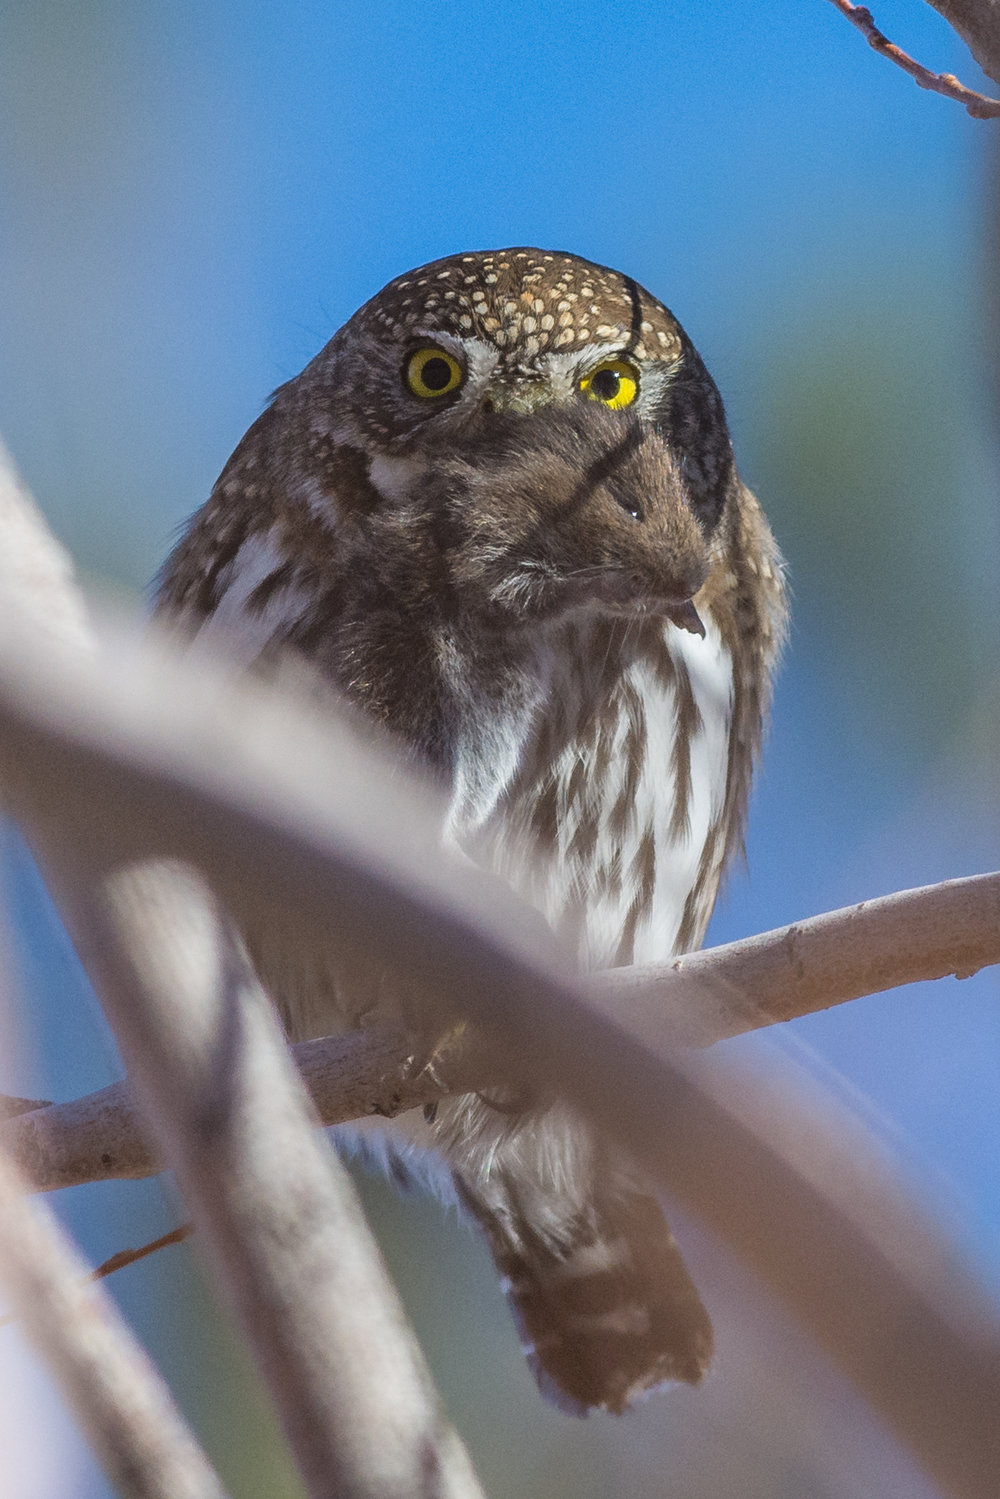 Photo of the Week 43:   Northern Pygmy Owl (Glaucidium gnoma) - Davis Creek Co. Park, Washoe Co. (NV)  EQ: D7200, 300mm f/2.8   Taken: 12-29-2016 at 15:16   Settings: 450 mm (35mm eqiv), 1/1000s, f/2.8, ISO110, +1/3EV         Conditions: Overcast